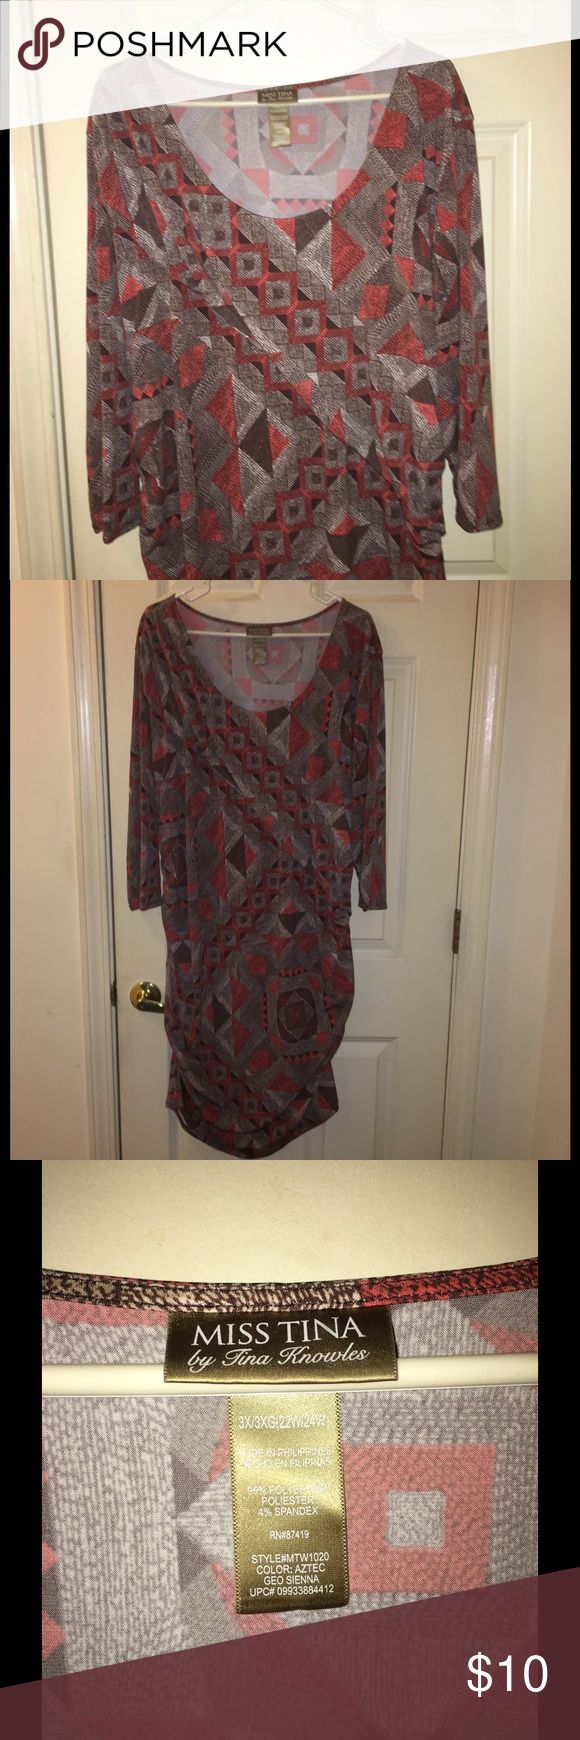 Miss Tina 3X Brown Bodycon Style Dress Brown patterned Bodycon style dress.  Dress has rucking on the sides for a slimming fit.  Long sleeves.  Size 3X. From Miss Tina.  Great condition. Important:   All items are freshly laundered as applicable prior to shipping (new items and shoes excluded).  Not all my items are from pet/smoke free homes.  Price is reduced to reflect this!   Thank you for looking! miss tina Dresses Midi